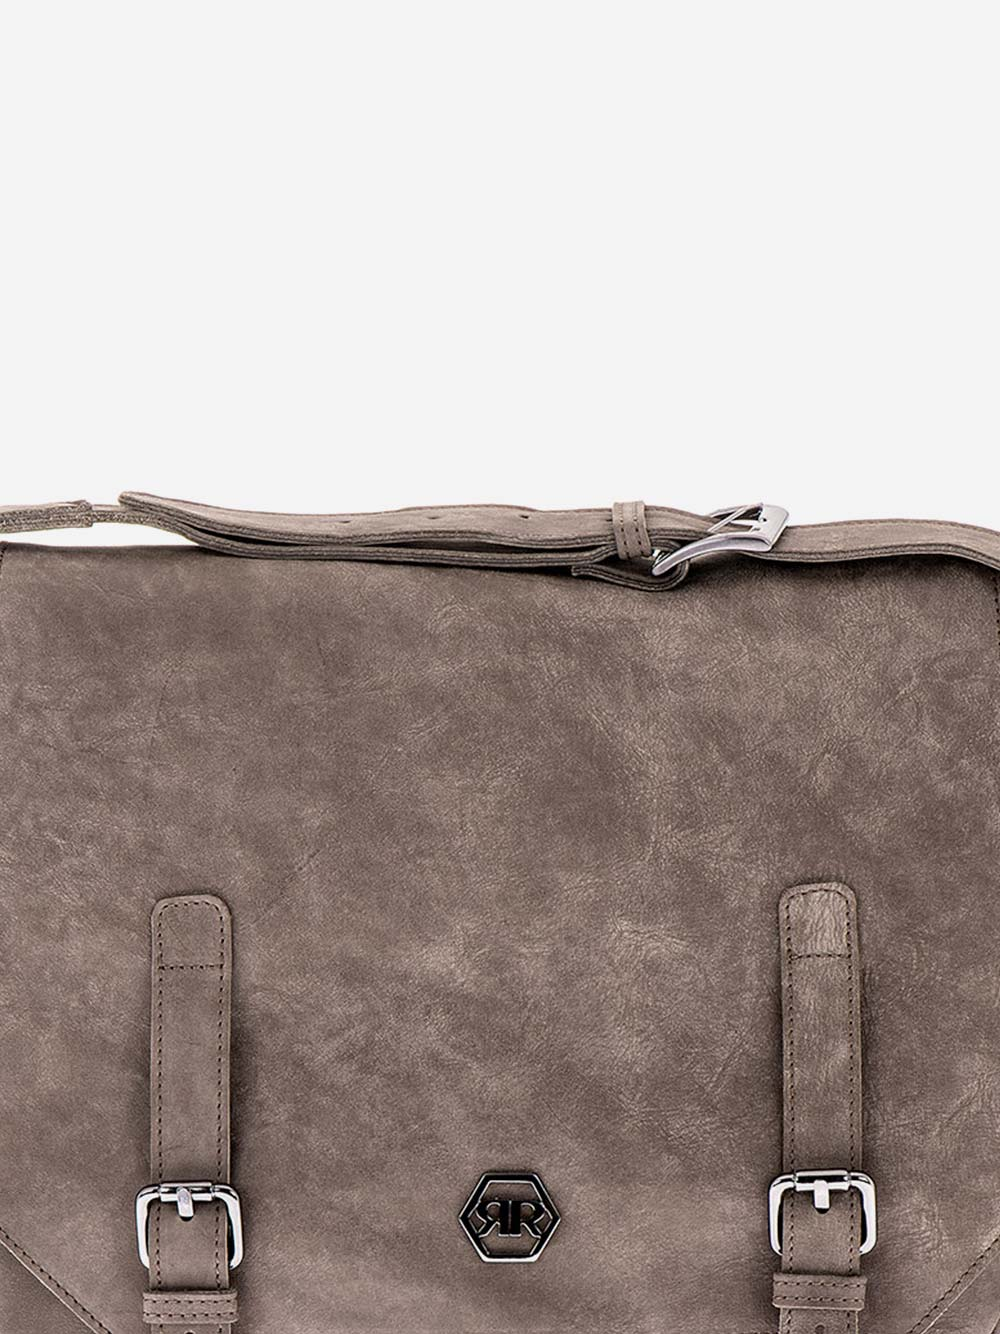 Rustic Grey Messenger Bag